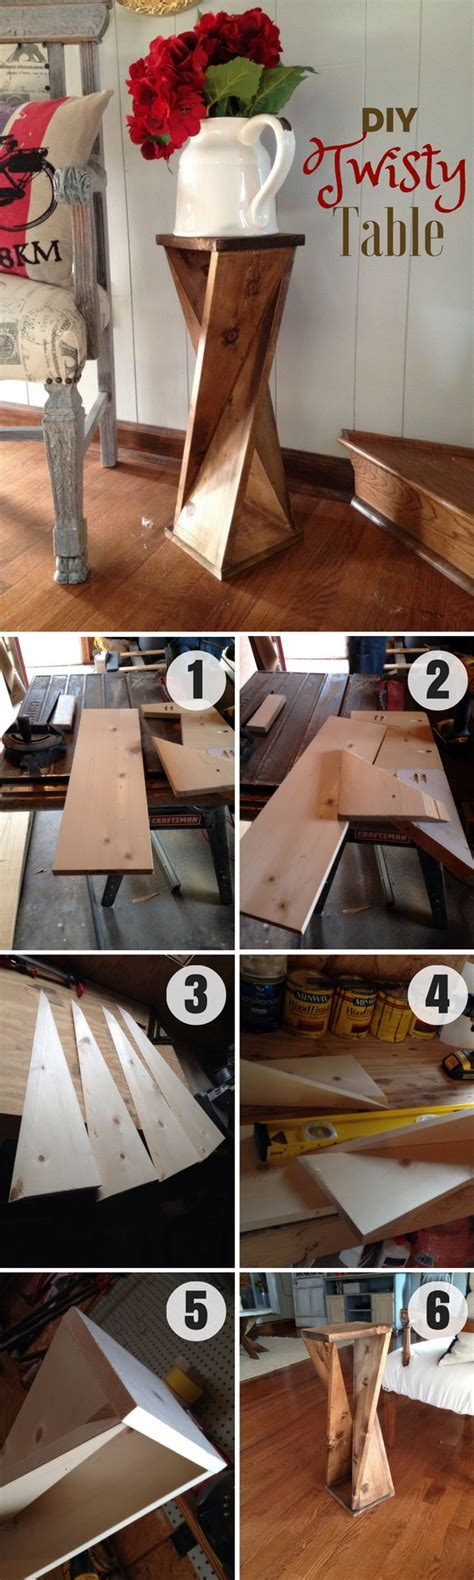 home woodwork projects 18 amazing easy diy wood craft project ideas for home